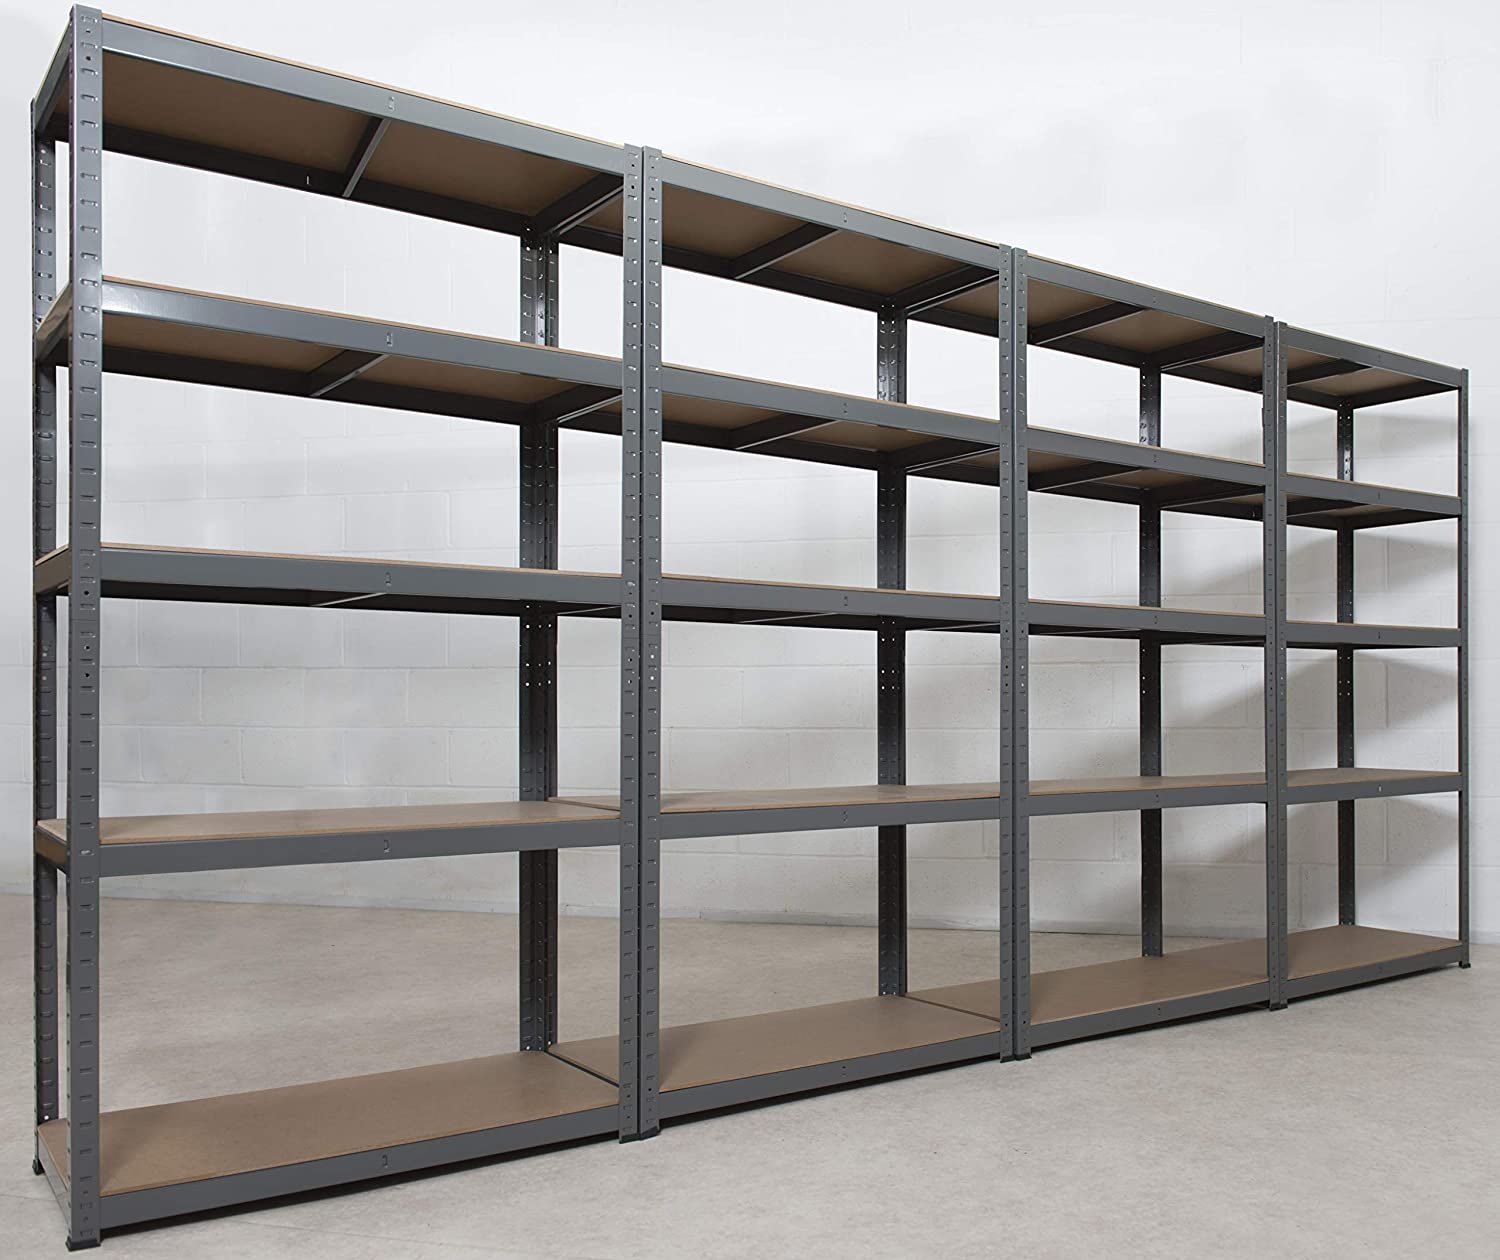 Storage Affairs Extra Heavy Duty Shelving 4 Units 176x90x45 Cm 265kg Per Shelf Grey 5 Tier Garage Storage Racking 5 Adjustable Shelves Boltless Assembly For Shed Home